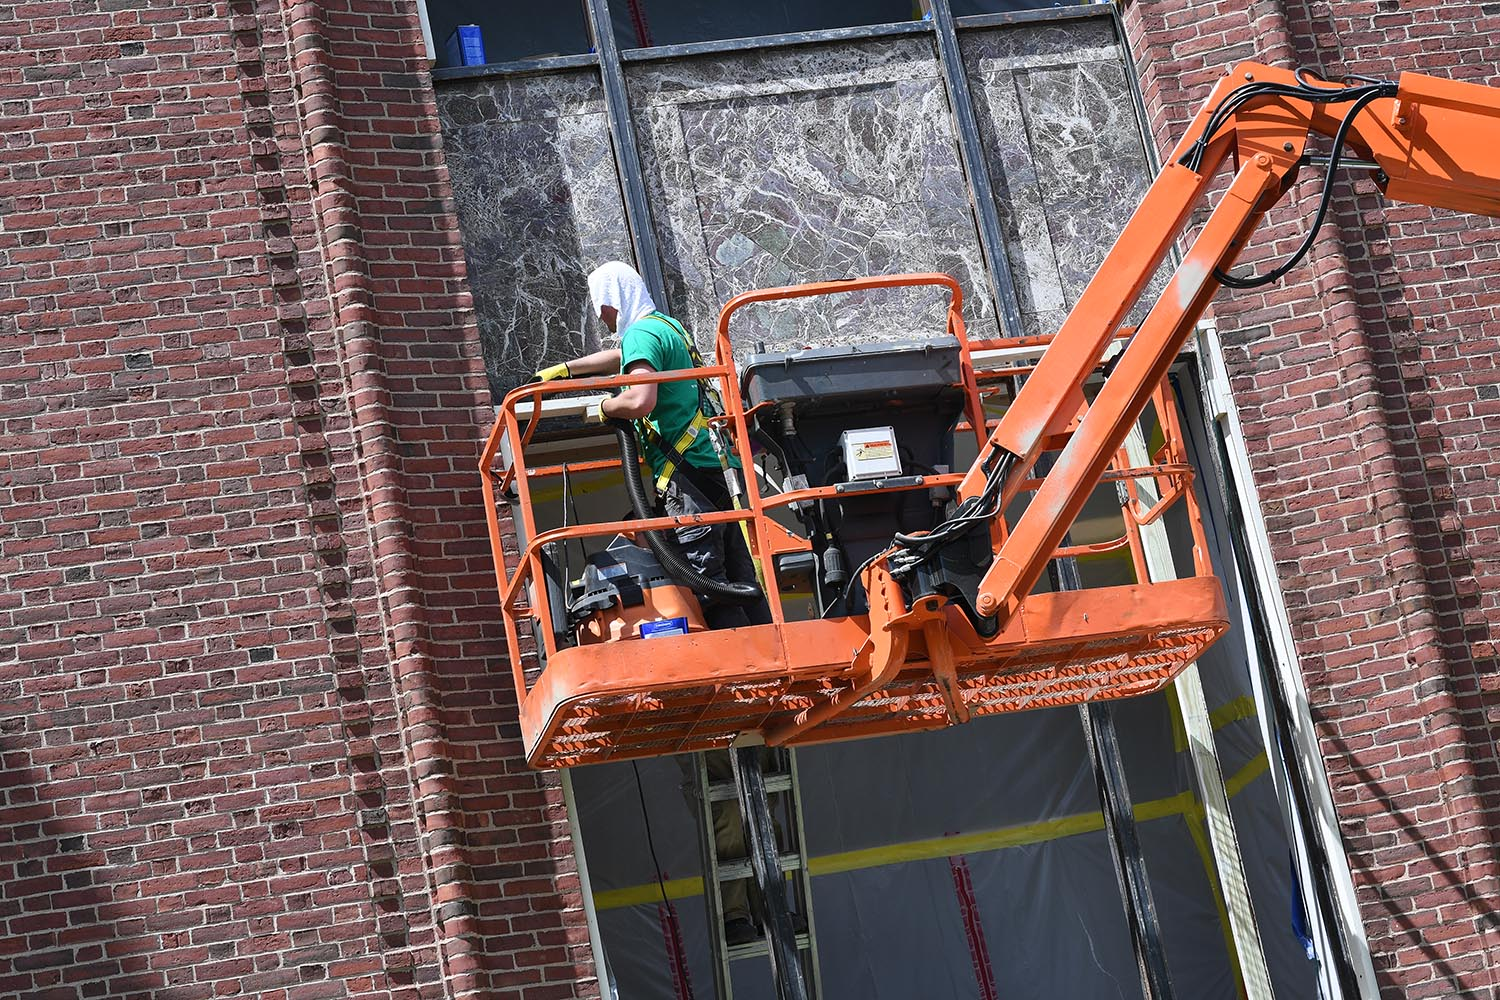 This summer, crews are working on restoring and repairing windows at Olin Library.